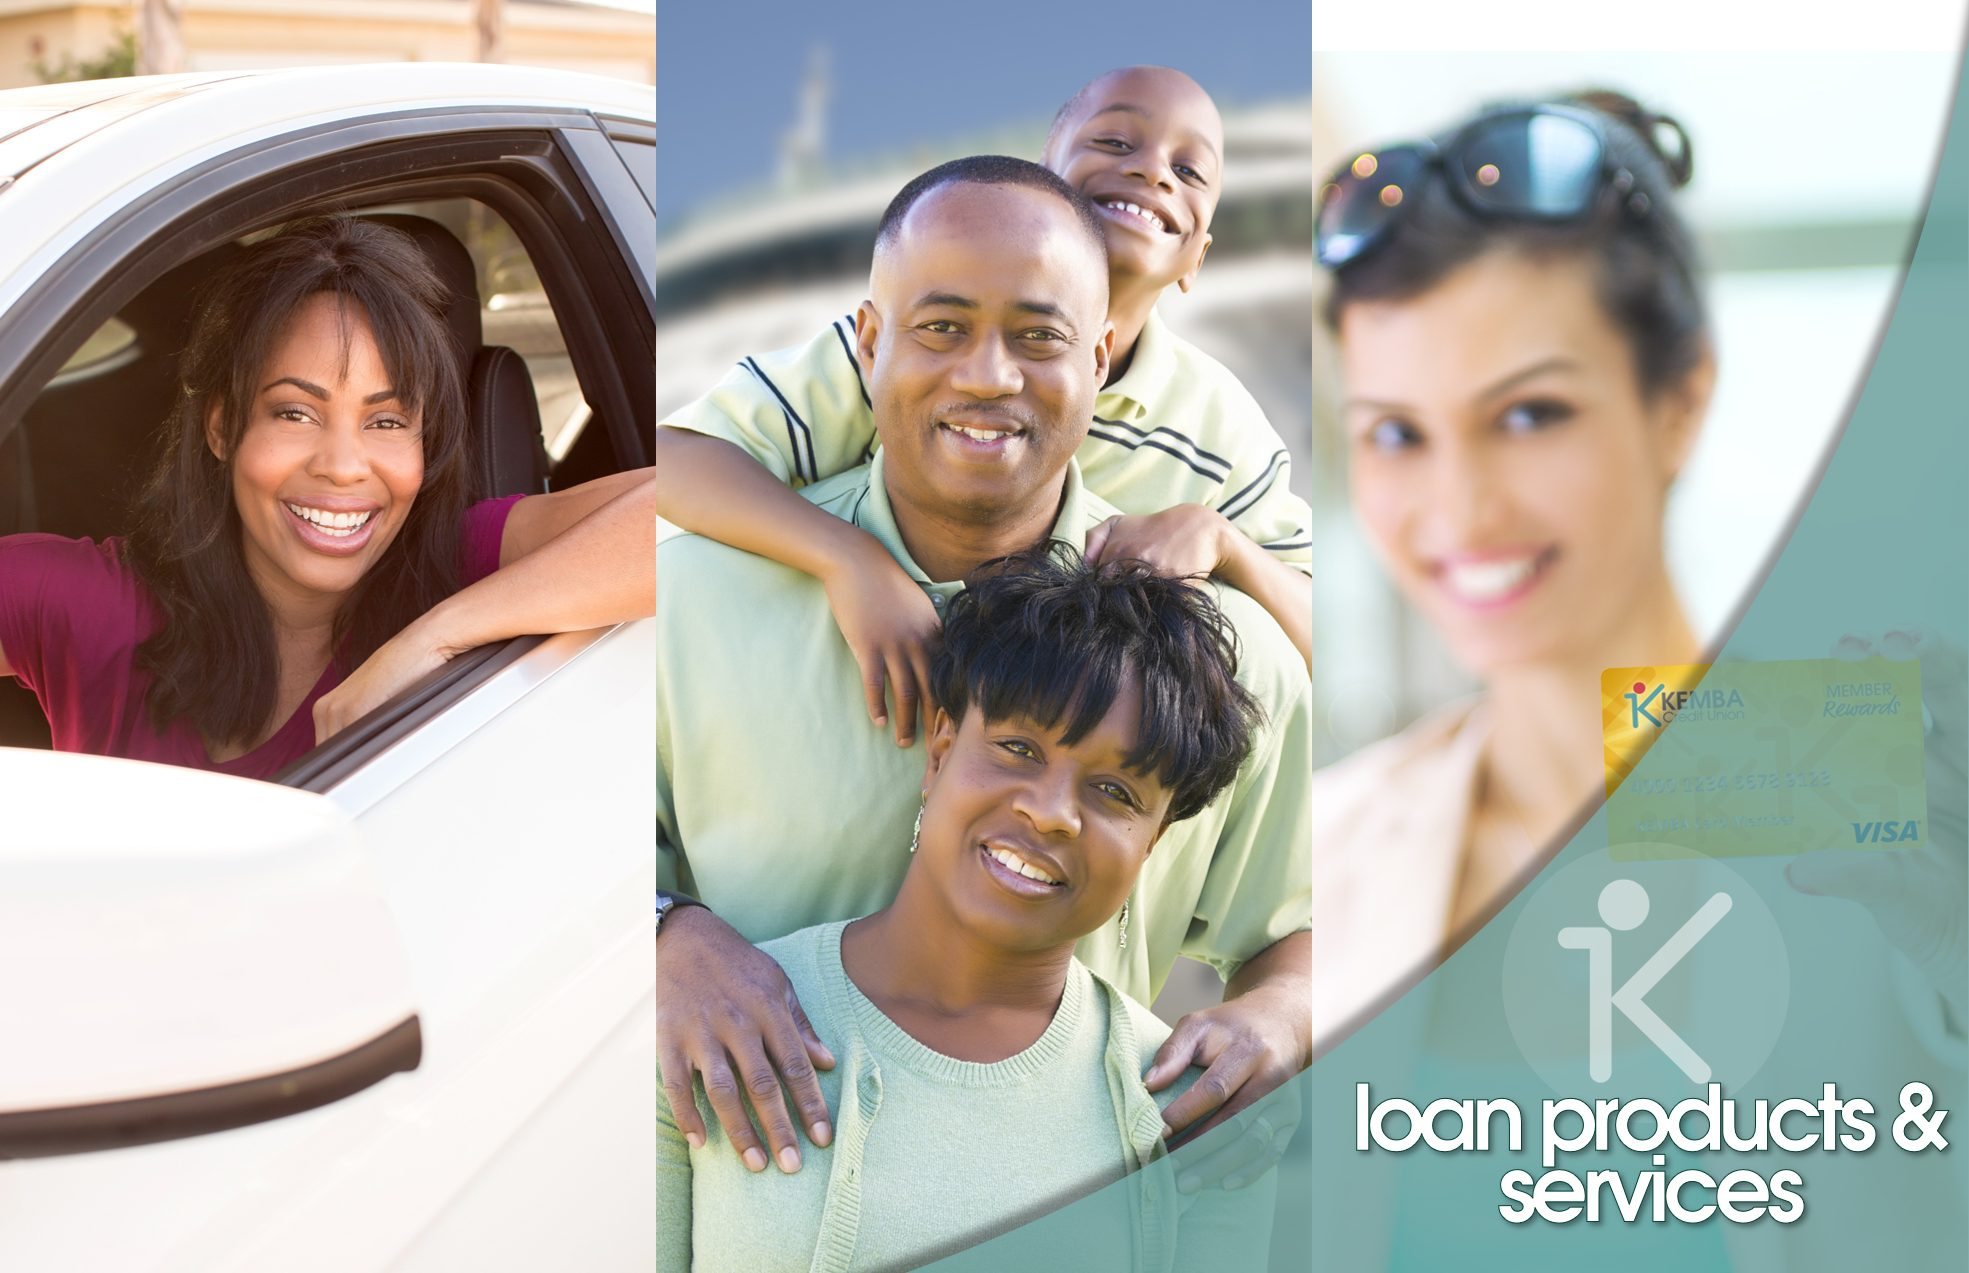 KEMBA credit union loan products and services